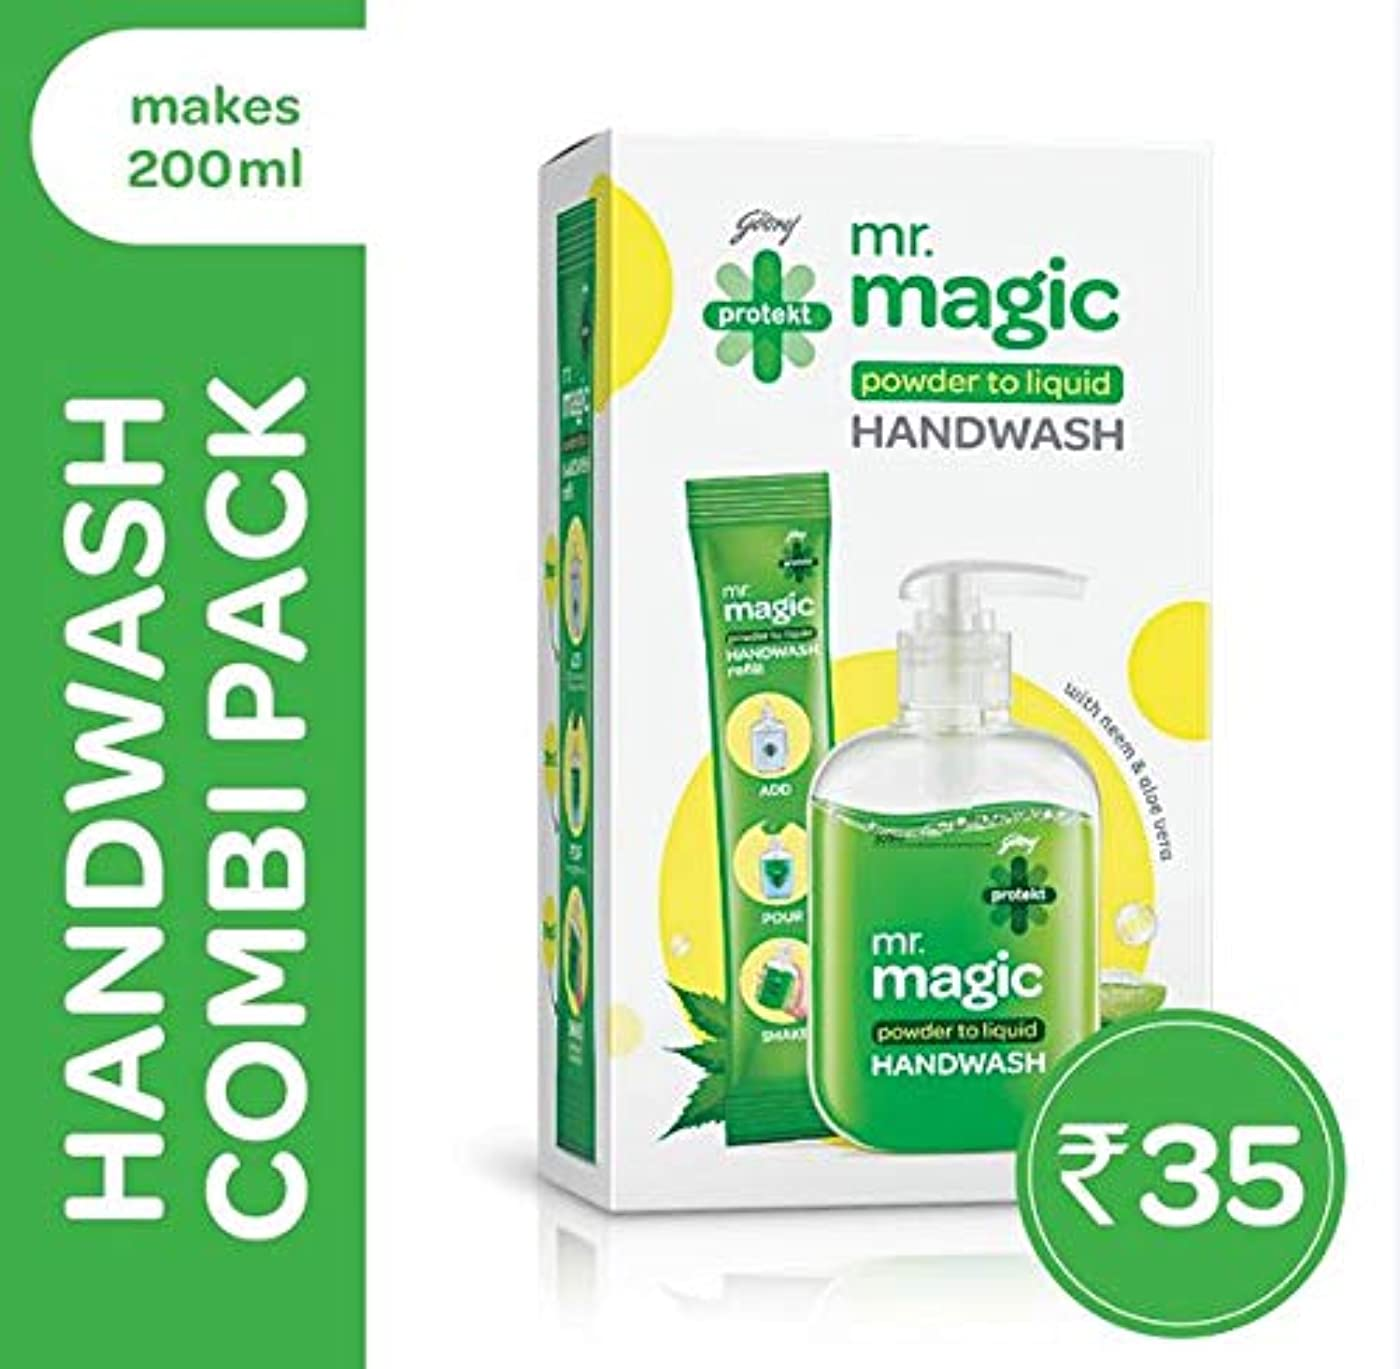 忙しい医療過誤危険なGodrej Protekt Mr. Magic Handwash 9g (Pack of 2)